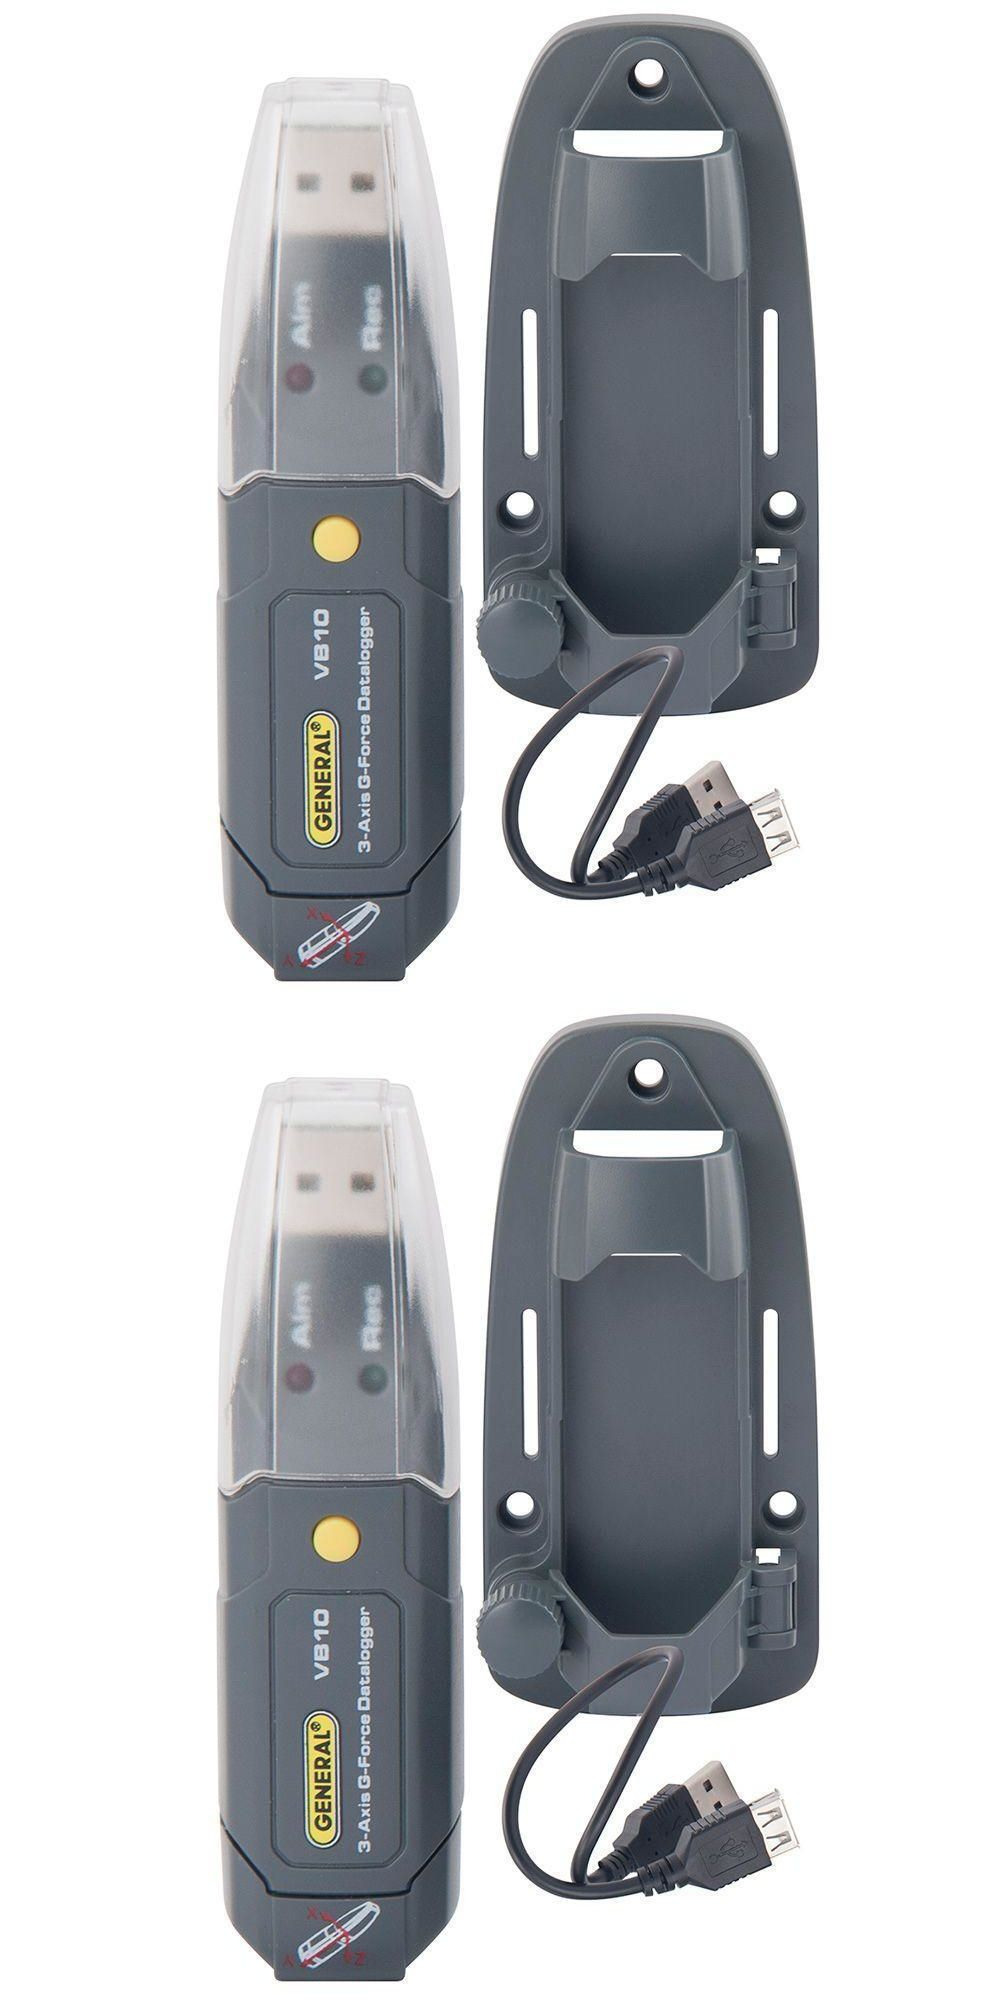 Electrical Testers 126406 General Tools 3 Axis Usb Vibration Lcd Led Digital Voltage Continuity Circuit Tester Ebay Acceleration Data Logger Recorder Datalogger